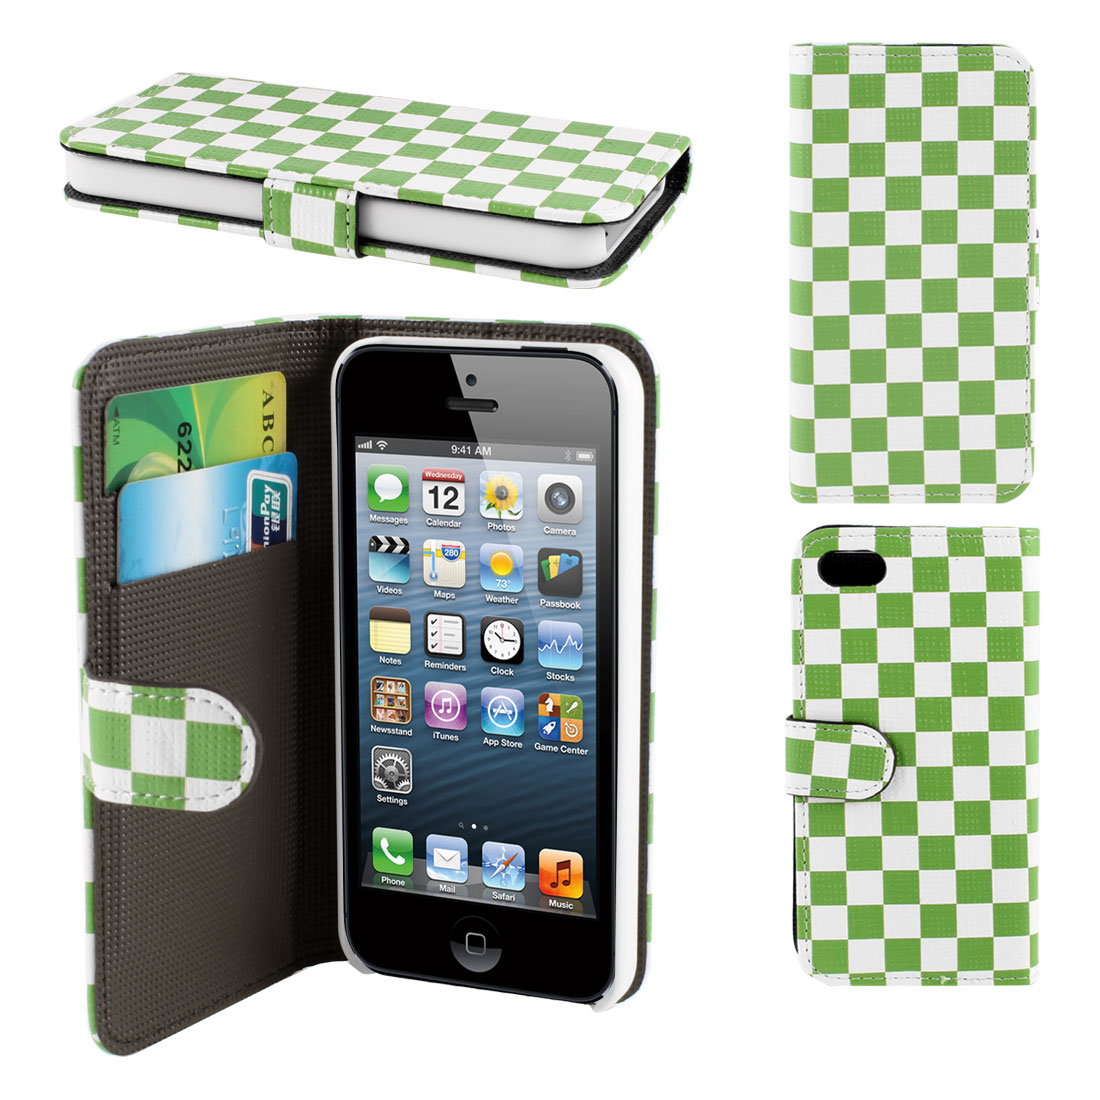 White Green Grid Print Flip Pouch Wallet Case Cover for iPhone 5 5G 5th Gen